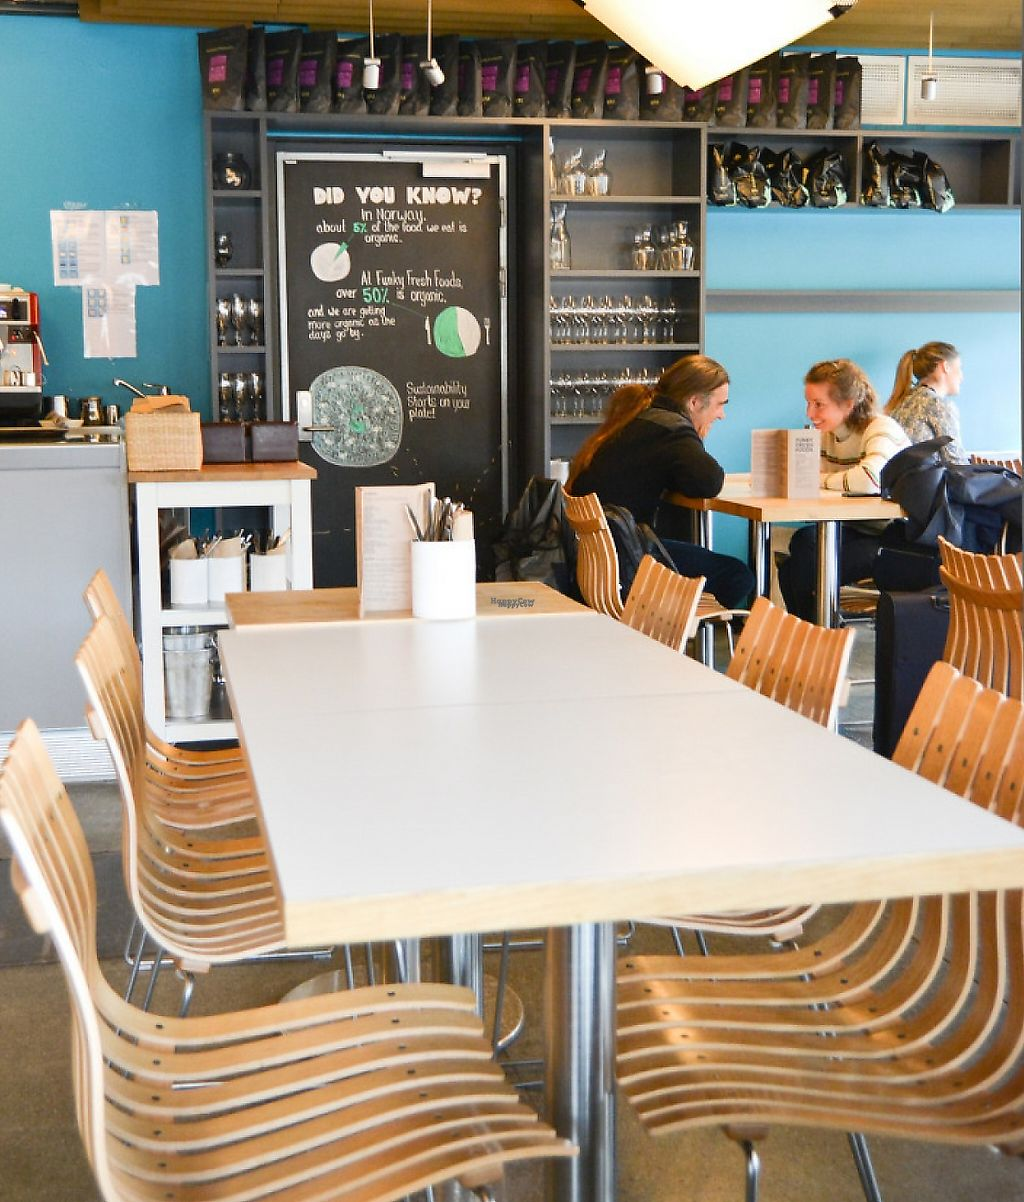 """Photo of Funky Fresh Cafe  by <a href=""""/members/profile/Nais23"""">Nais23</a> <br/>The café <br/> March 19, 2017  - <a href='/contact/abuse/image/19711/240519'>Report</a>"""